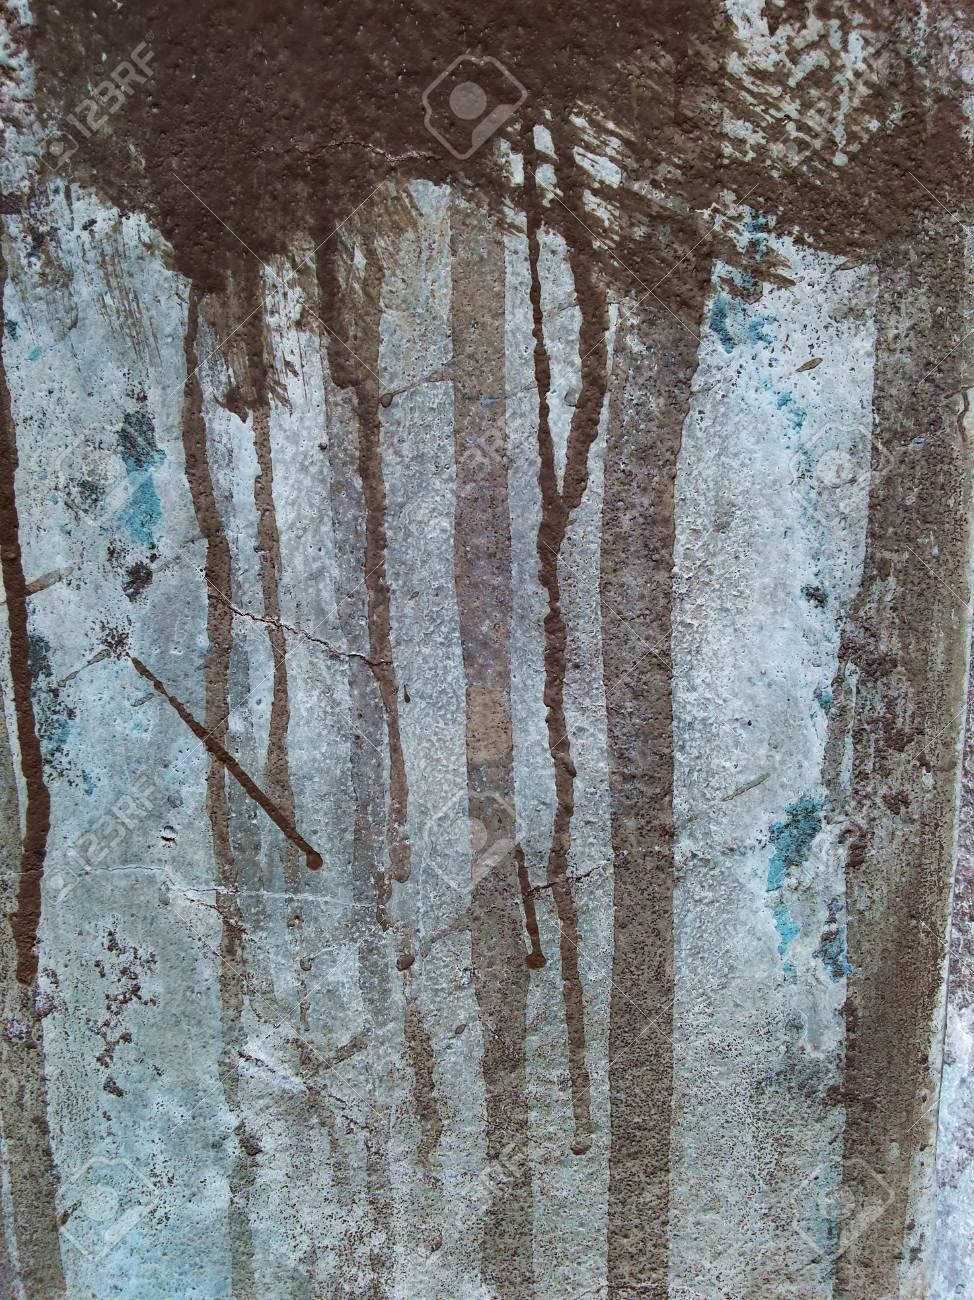 trace the flow of acrylic paint on wall concrete wall texture old rh 123rf com